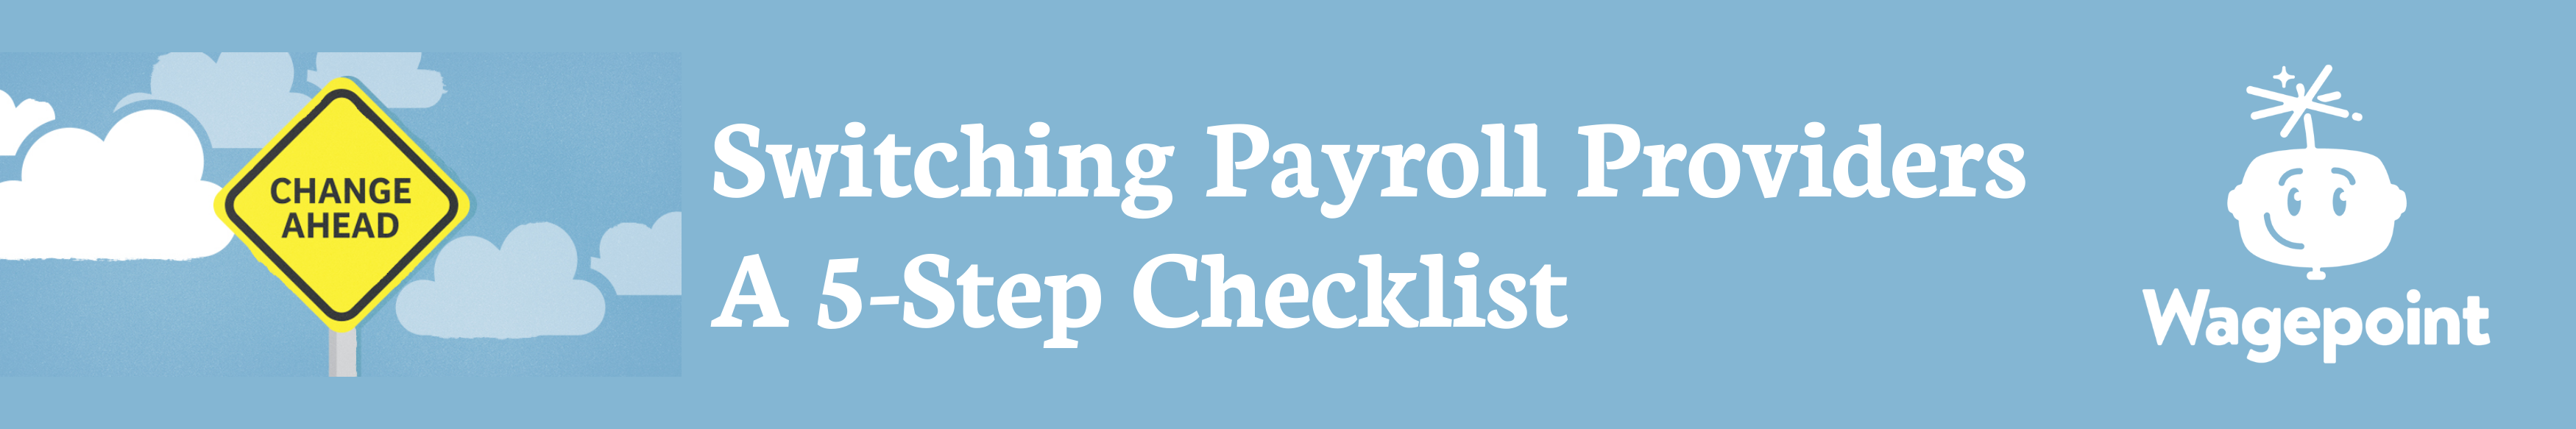 wagepoint switching payroll banner